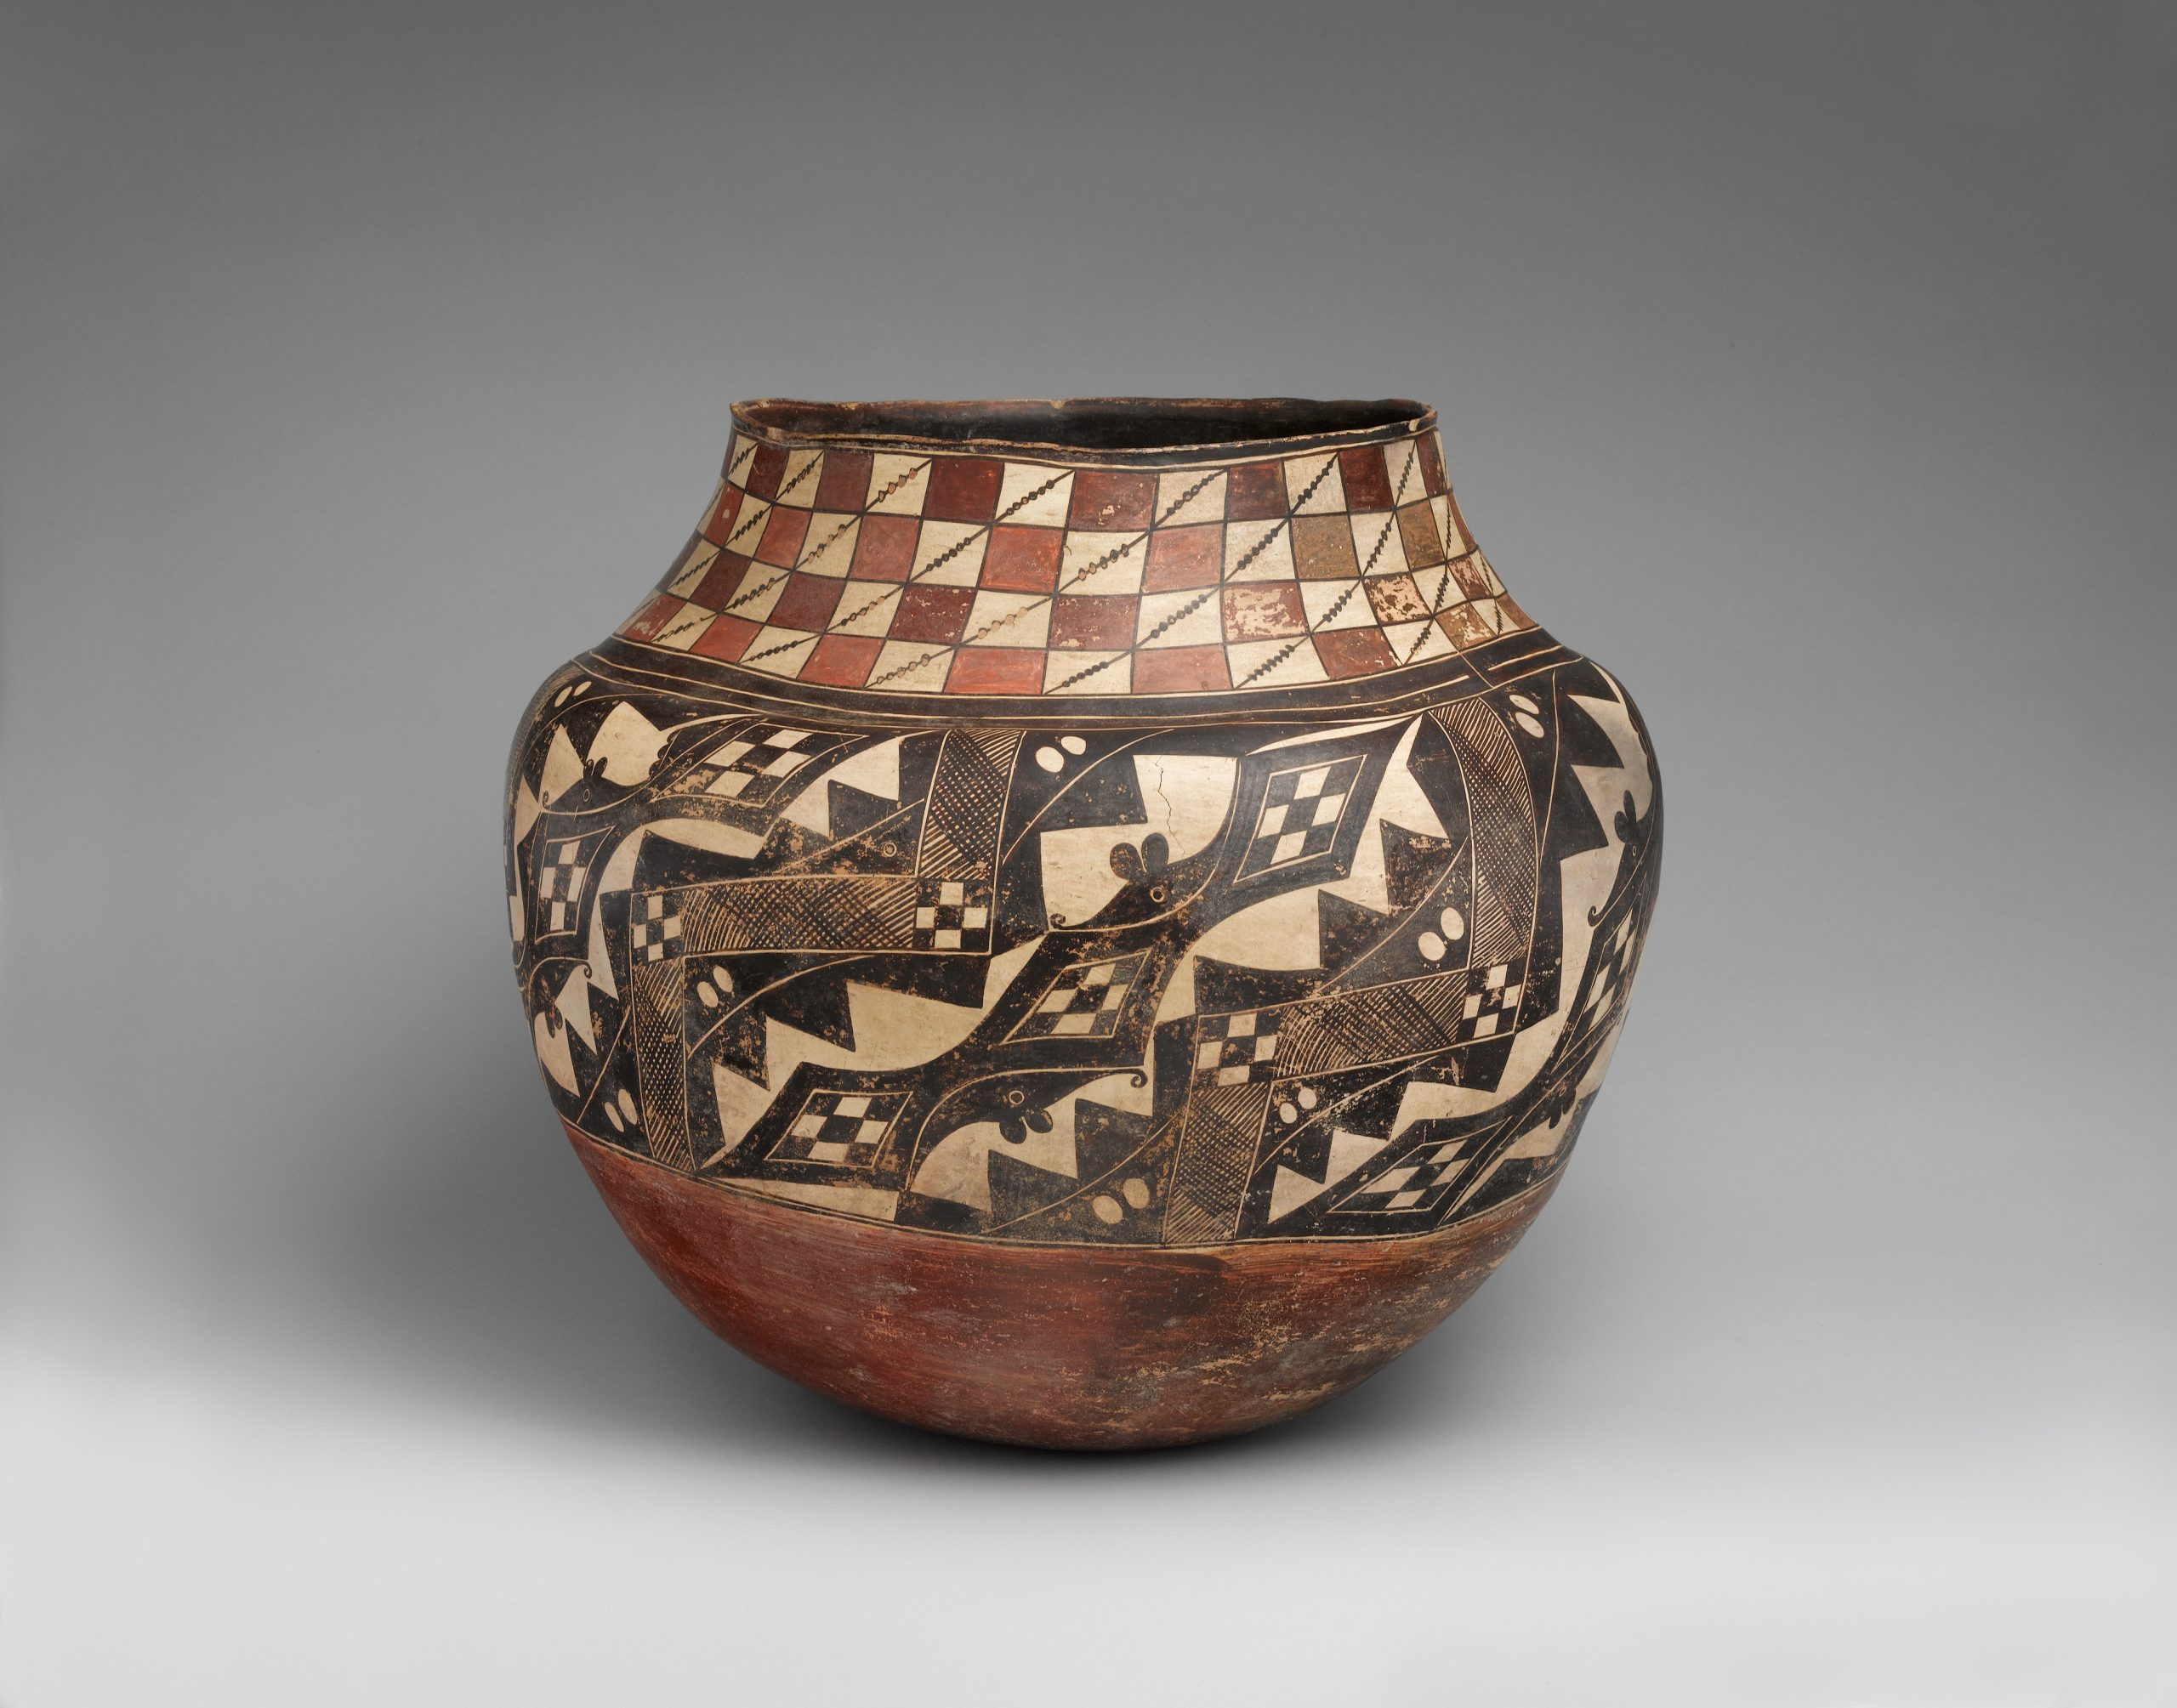 An Acoma olla with a brown and beige checkboard pattern atop a black and beige geometric design.